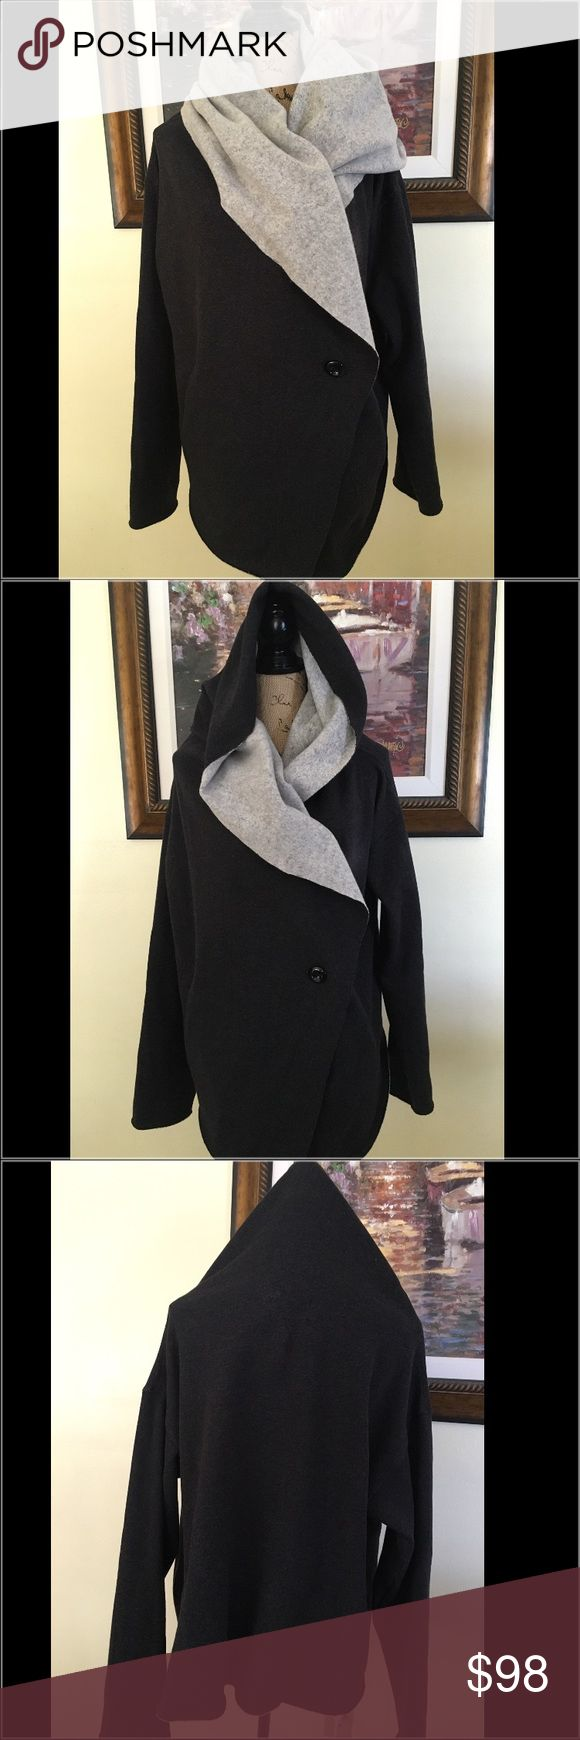 Walter Baker New York Heather Grey Cape/Sweater Walter Baker New York Heather Grey Cape/Sweater.  NWT.  Love the combo of colors charcoal and heather gray.  If I lived somewhere cold, this is what I would where.  Soft and comfortable. Walter Baker Jackets & Coats Capes